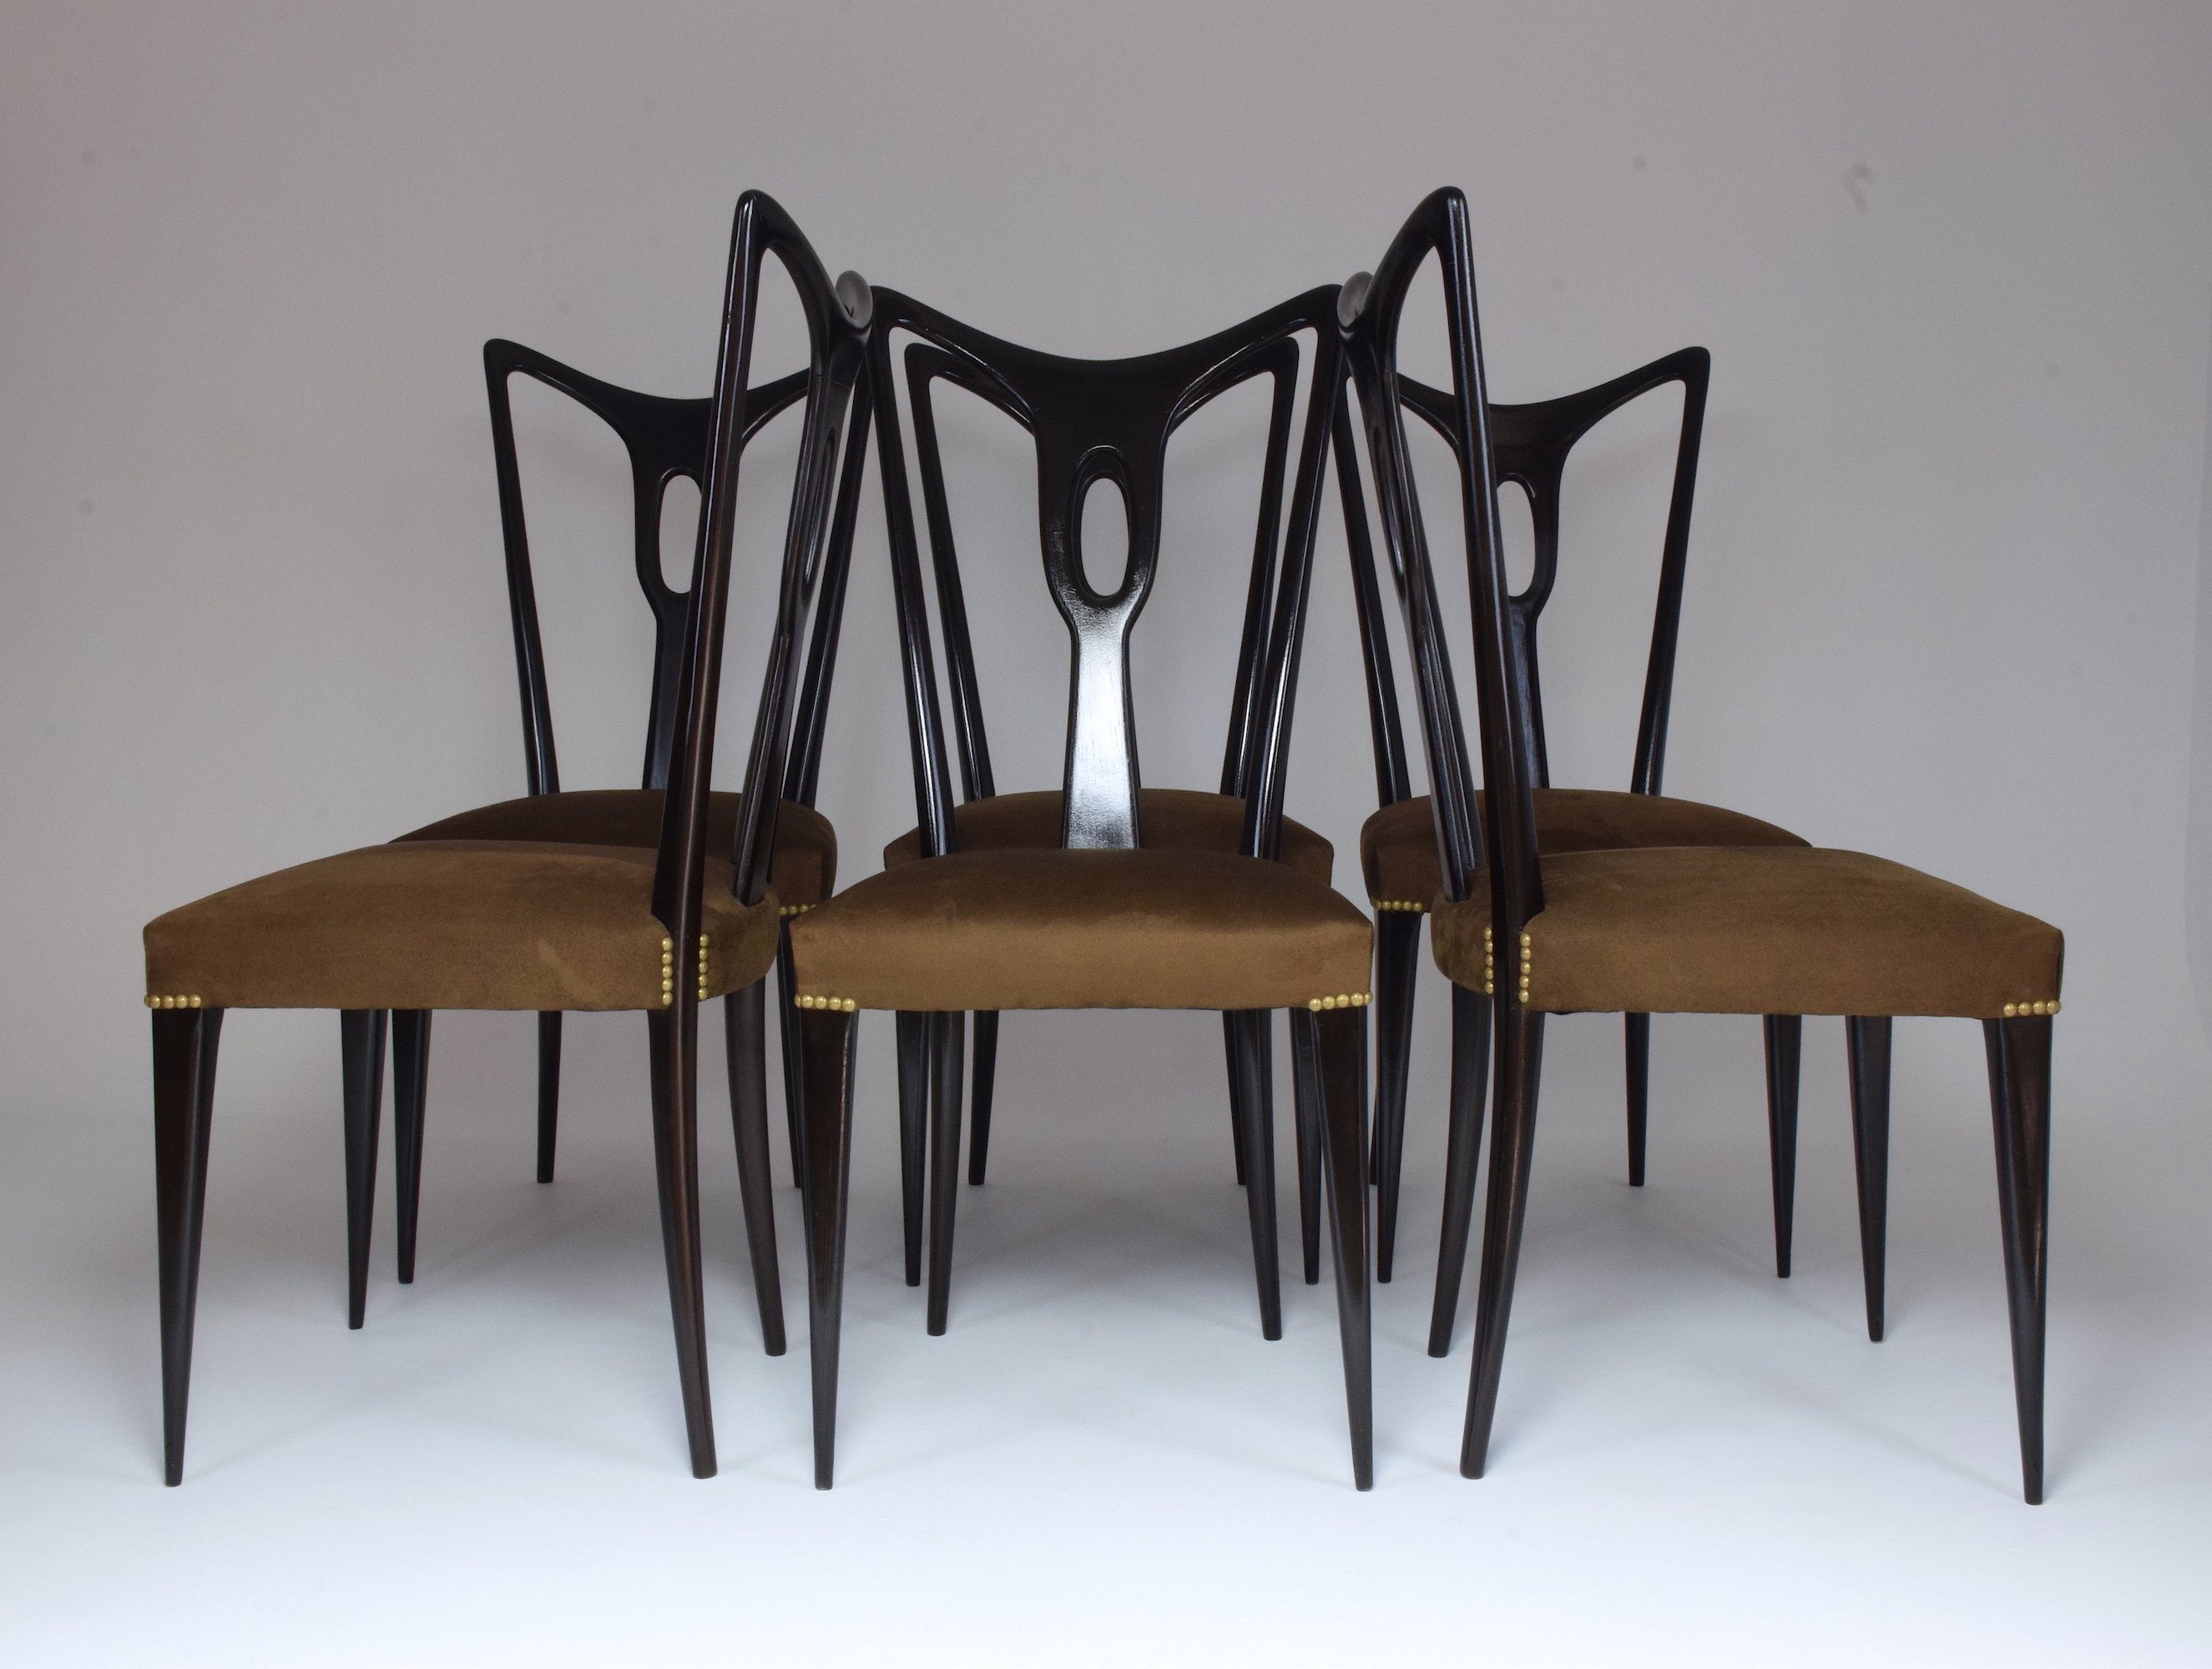 Set of 6 Italian Vintage Dining Chairs, 1940's